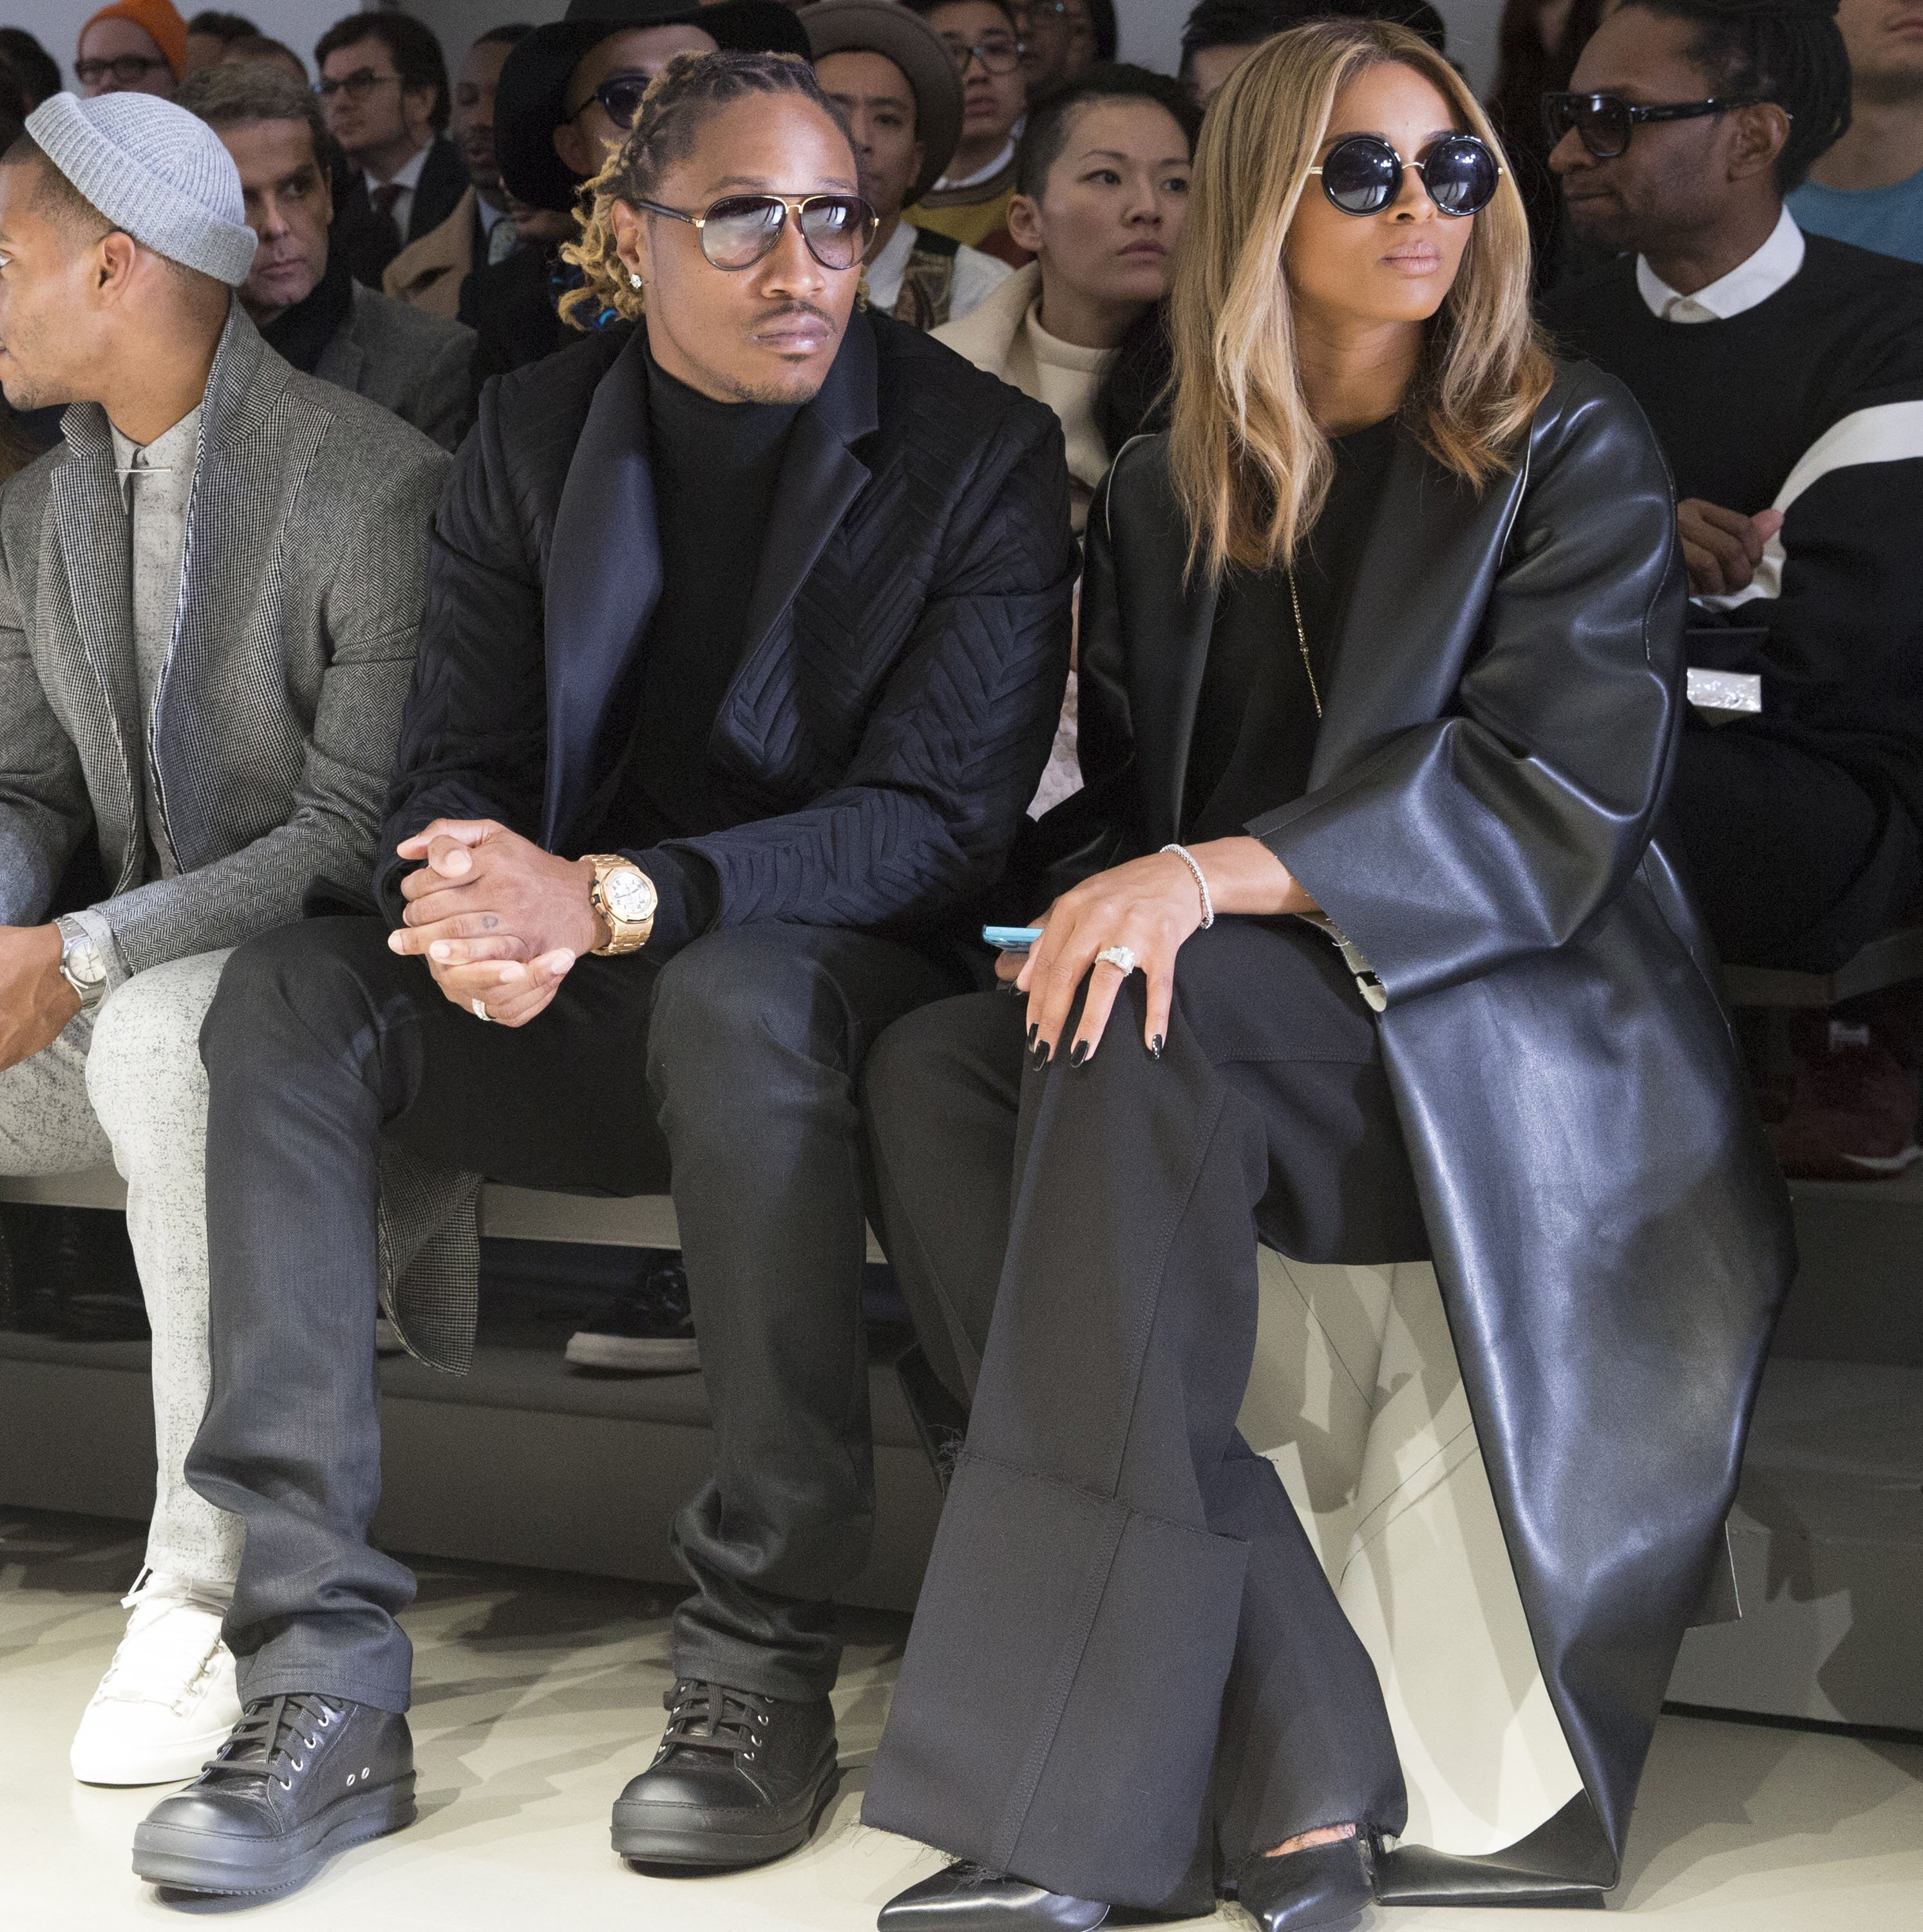 (Before the split) Future & Ciara at the Milan Fashion Week in Milan, Italy on Jan. 12, 2014. | Photo: Getty Images